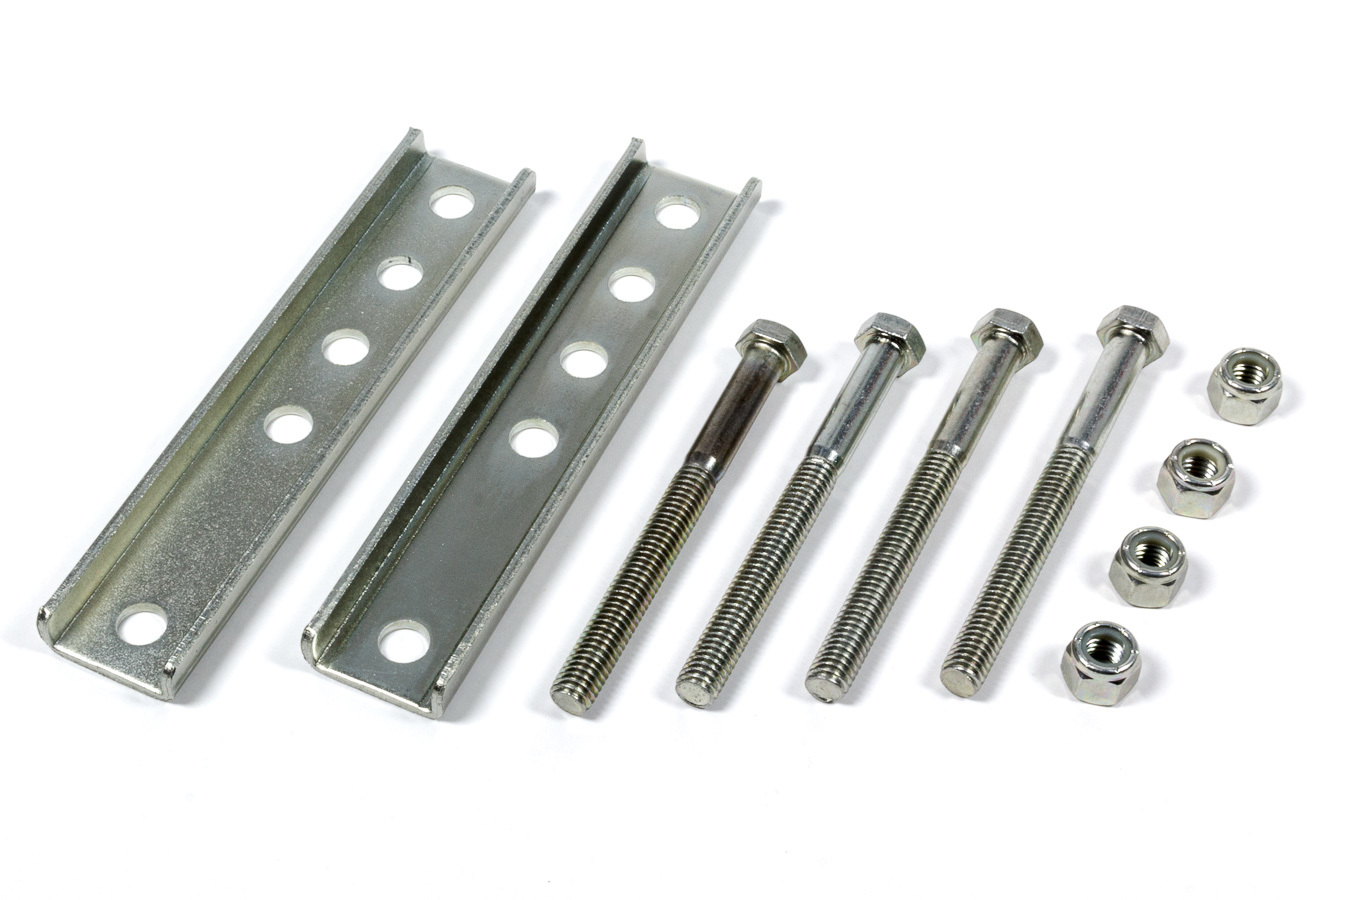 Reese Replacement Mounting Hardware for Jacks